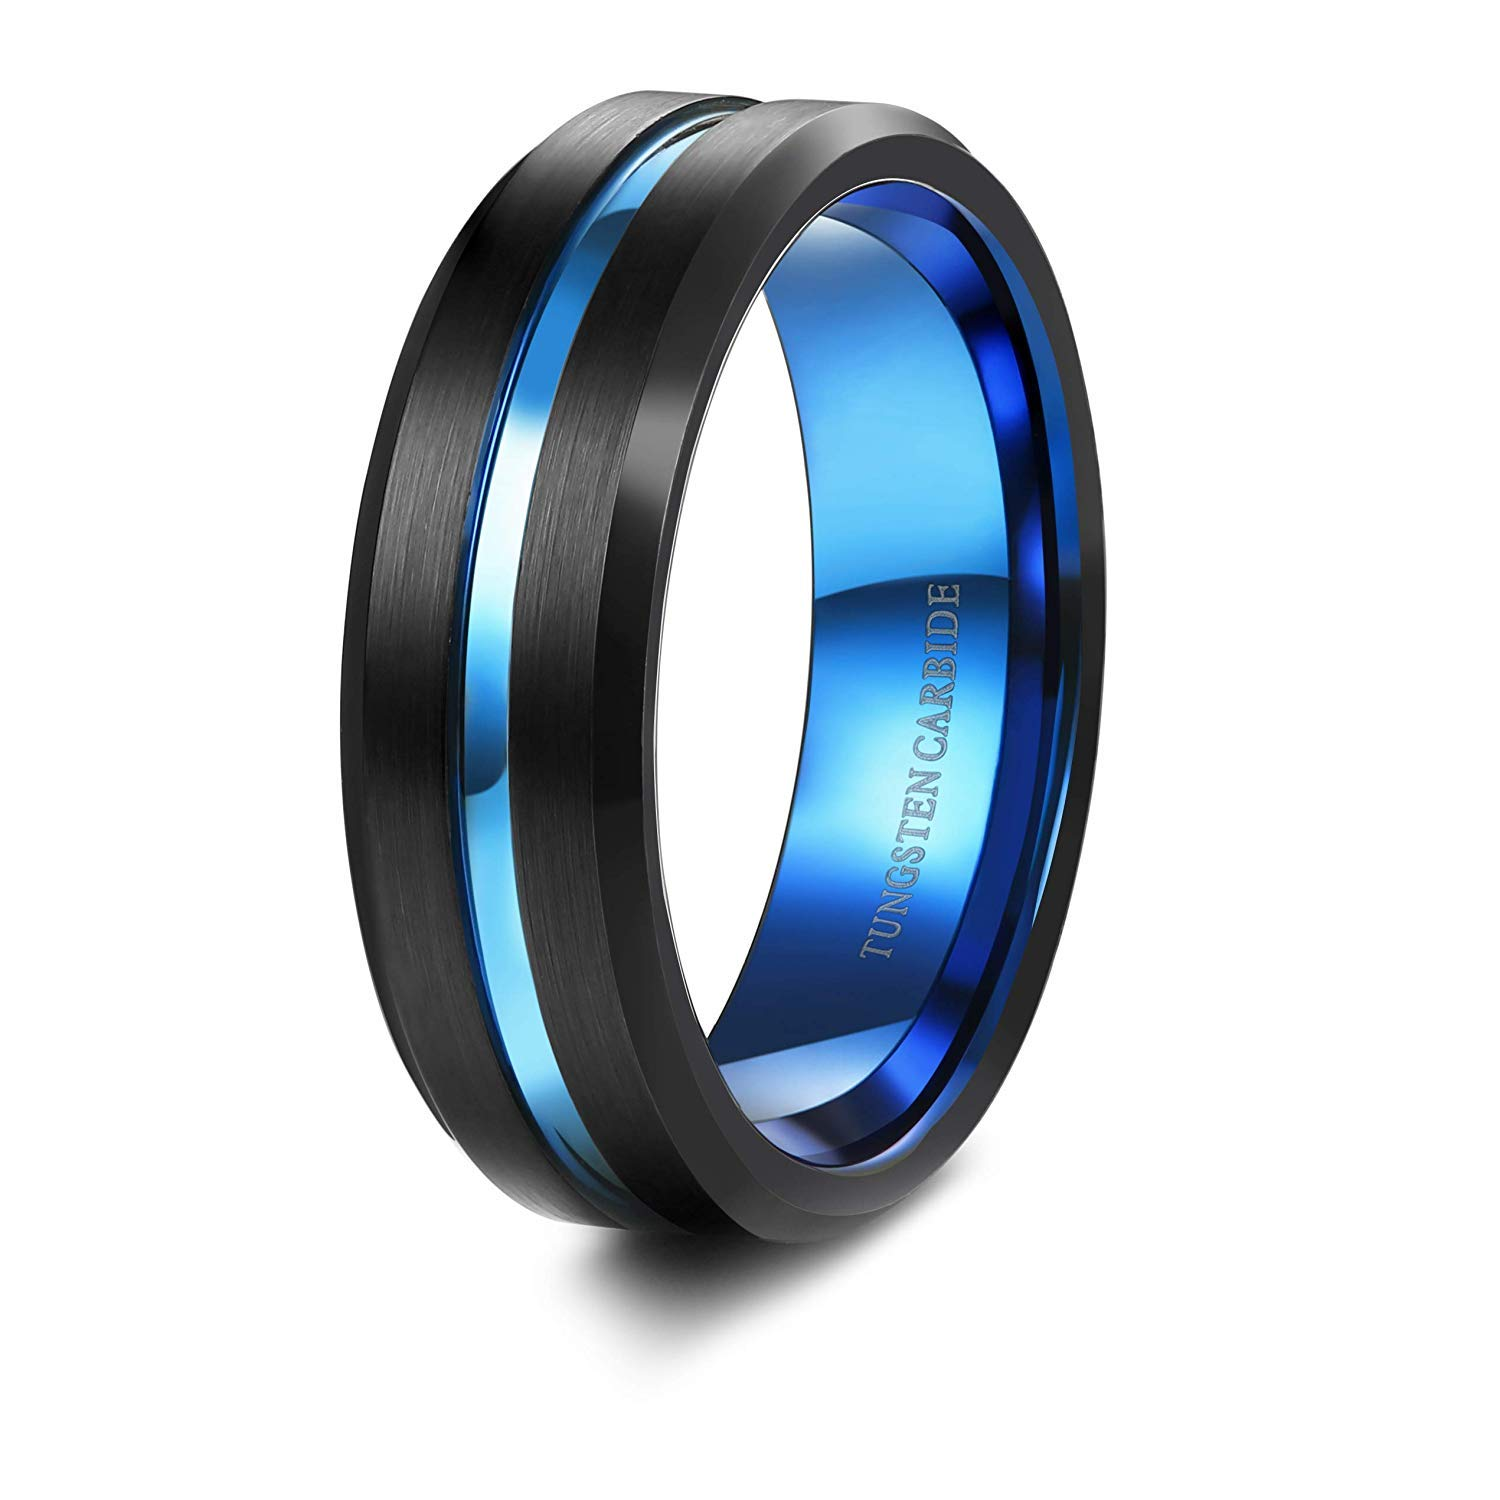 Buy Moneekar Jewels Men's 8mm Tungsten Carbide Ring Blue & Black Matte  Finish Beveled Edge Band Rings for Men at Amazon.in